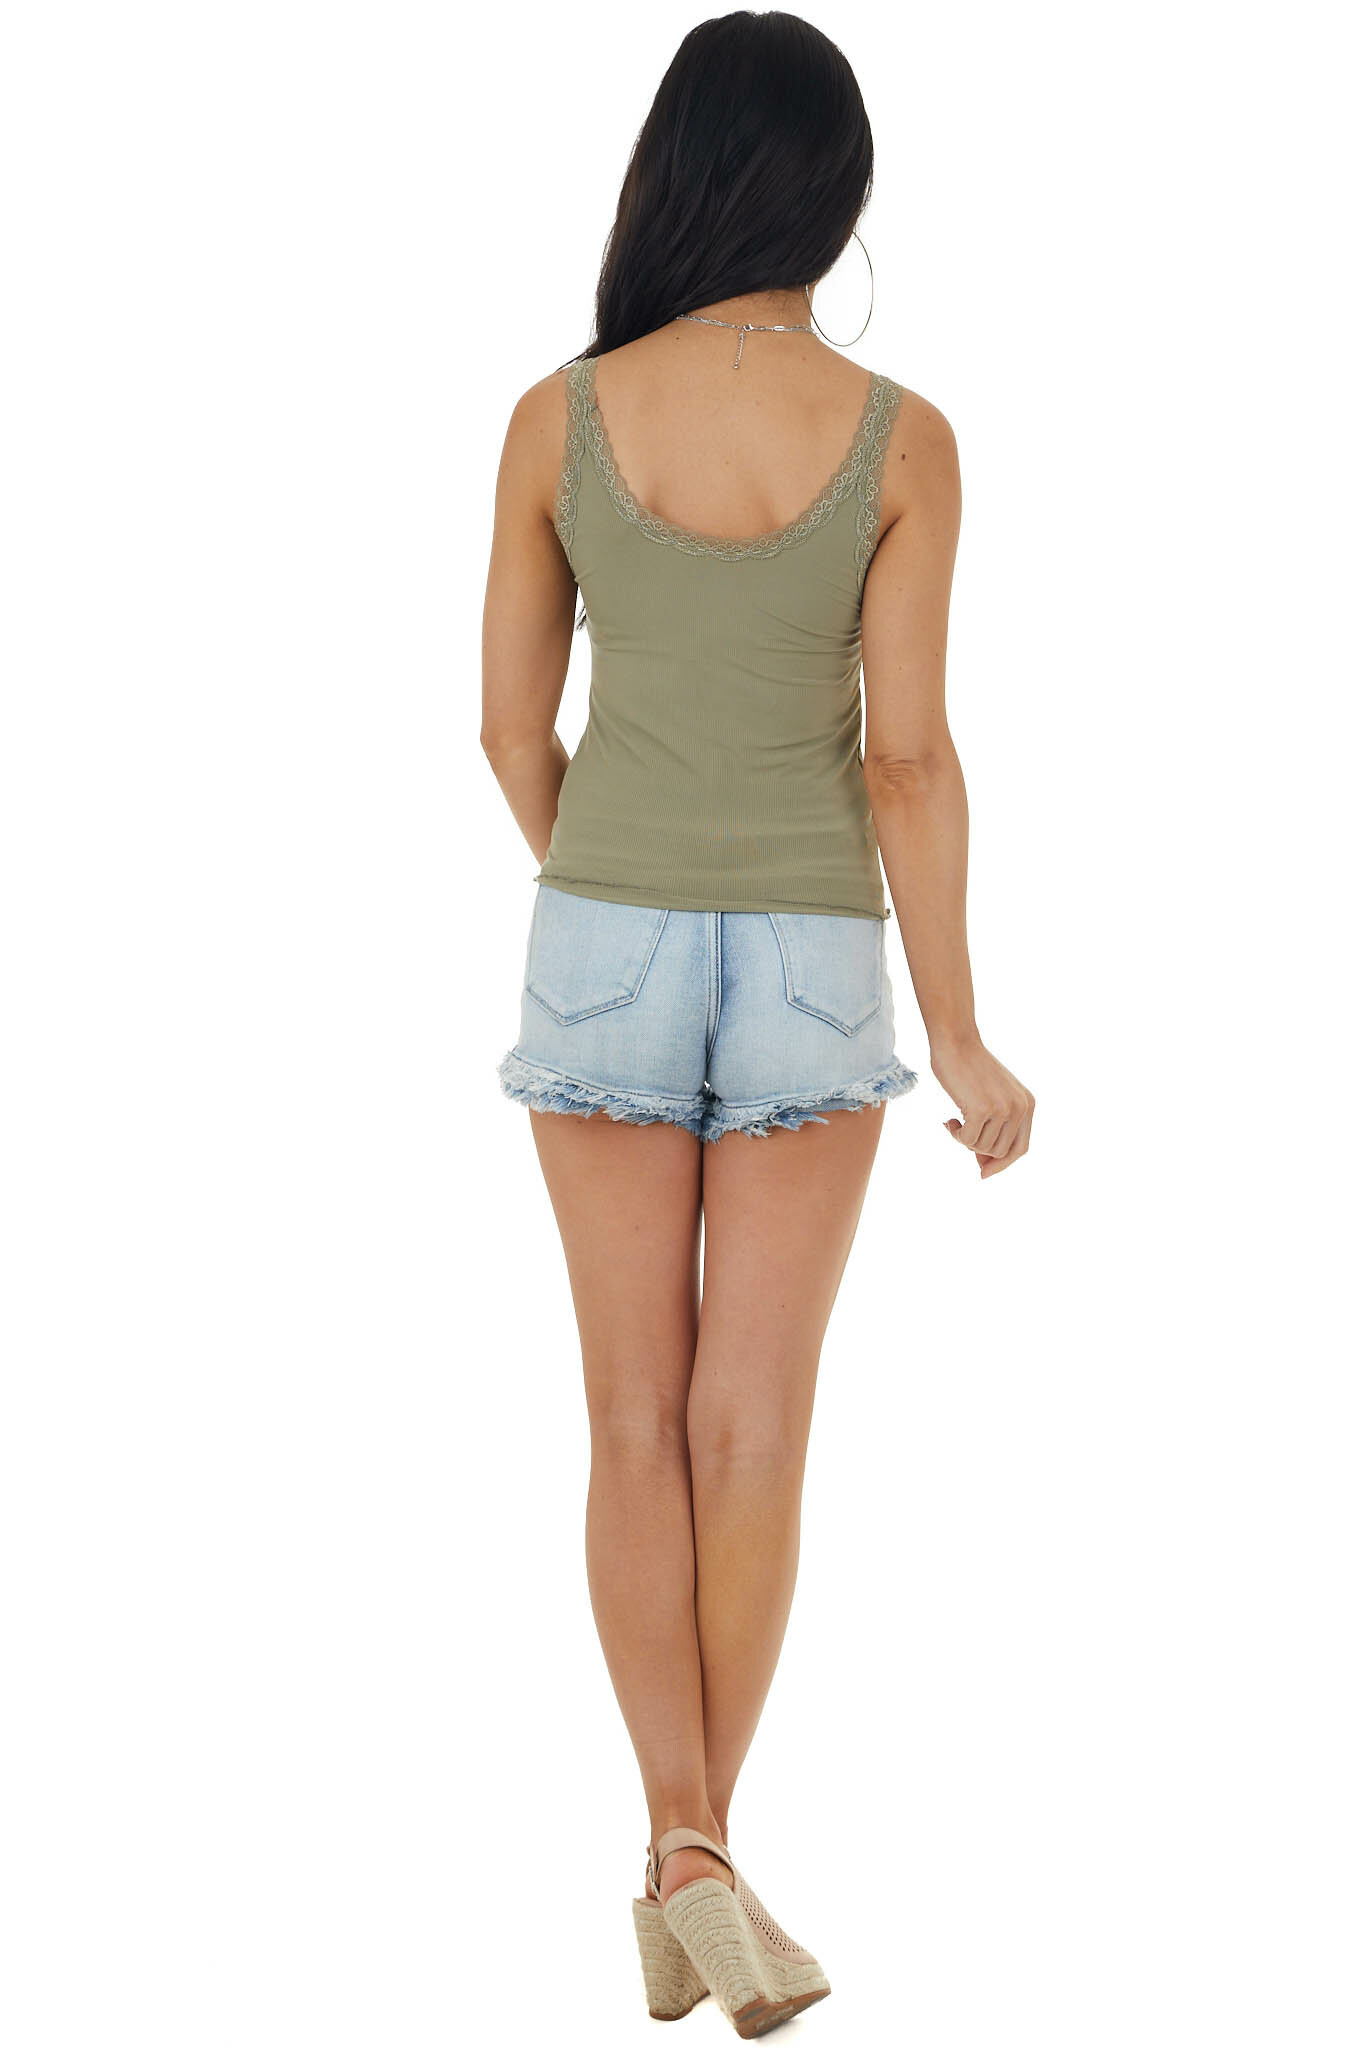 Faded Olive Ribbed Knit Tank Top with Lace Details